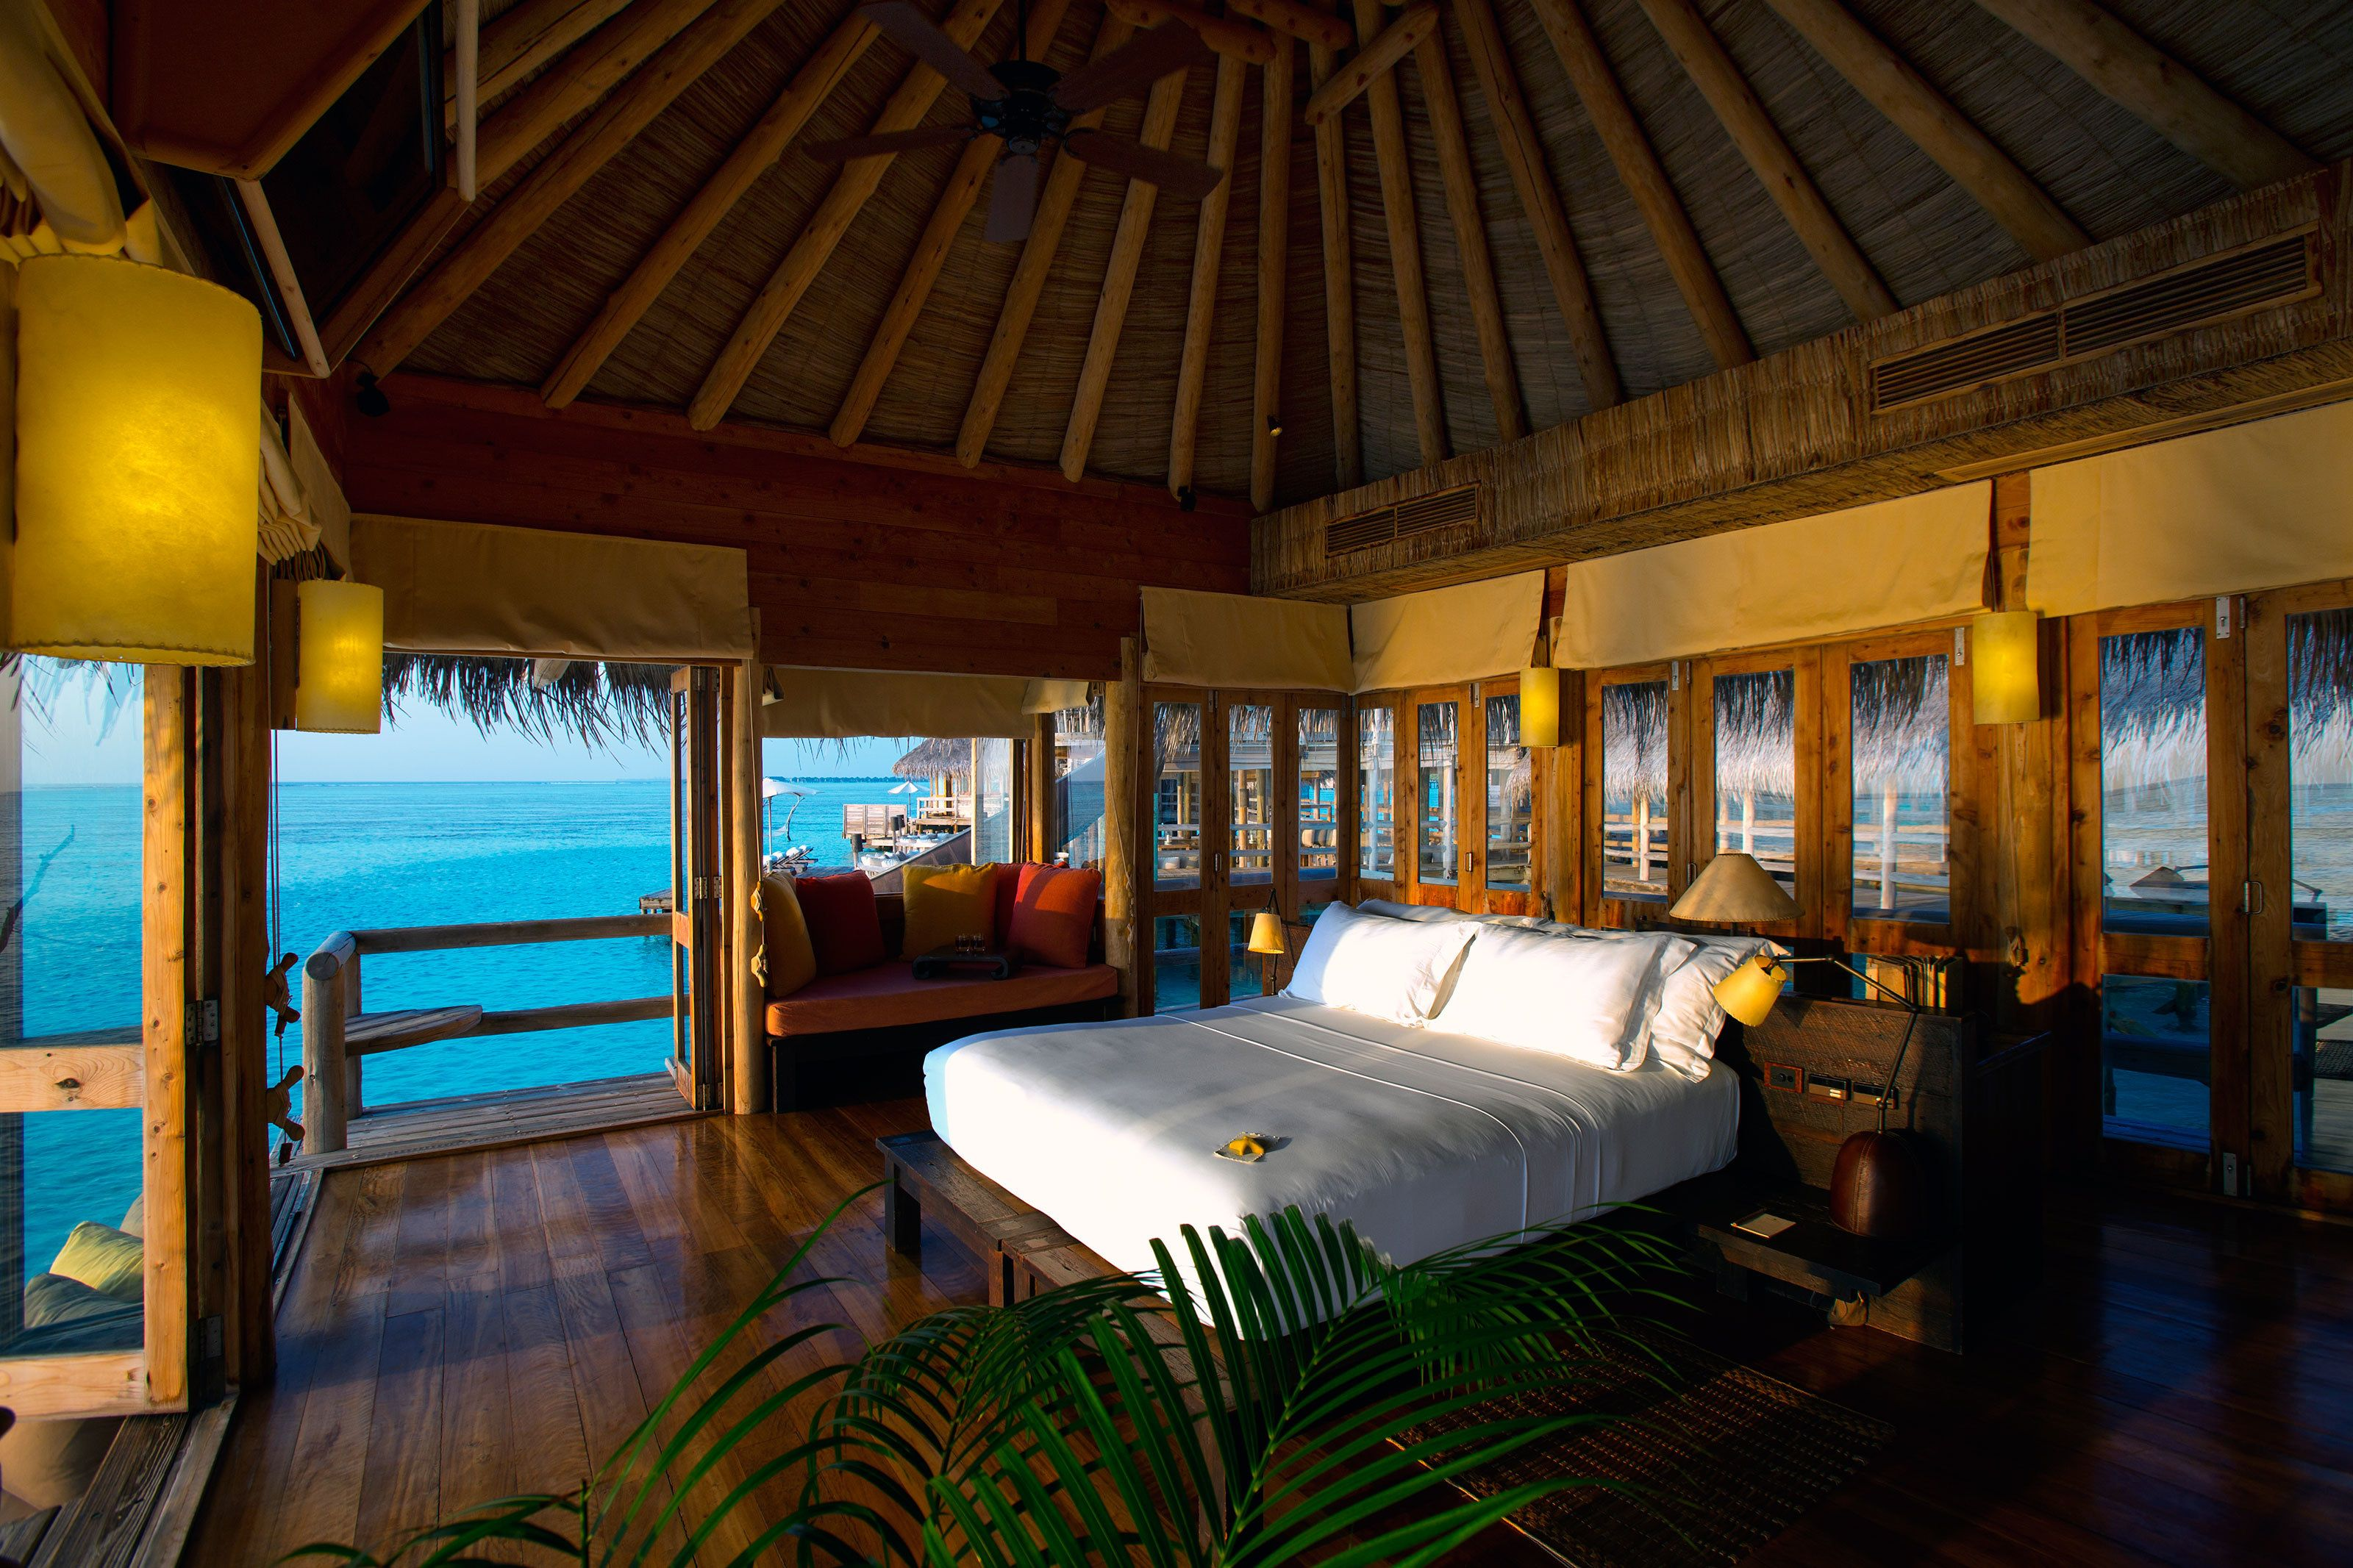 Nine Overwater Bungalows To Escape Your Winter Blues: 11 Sun-Soaked Villas To Visit This Winter